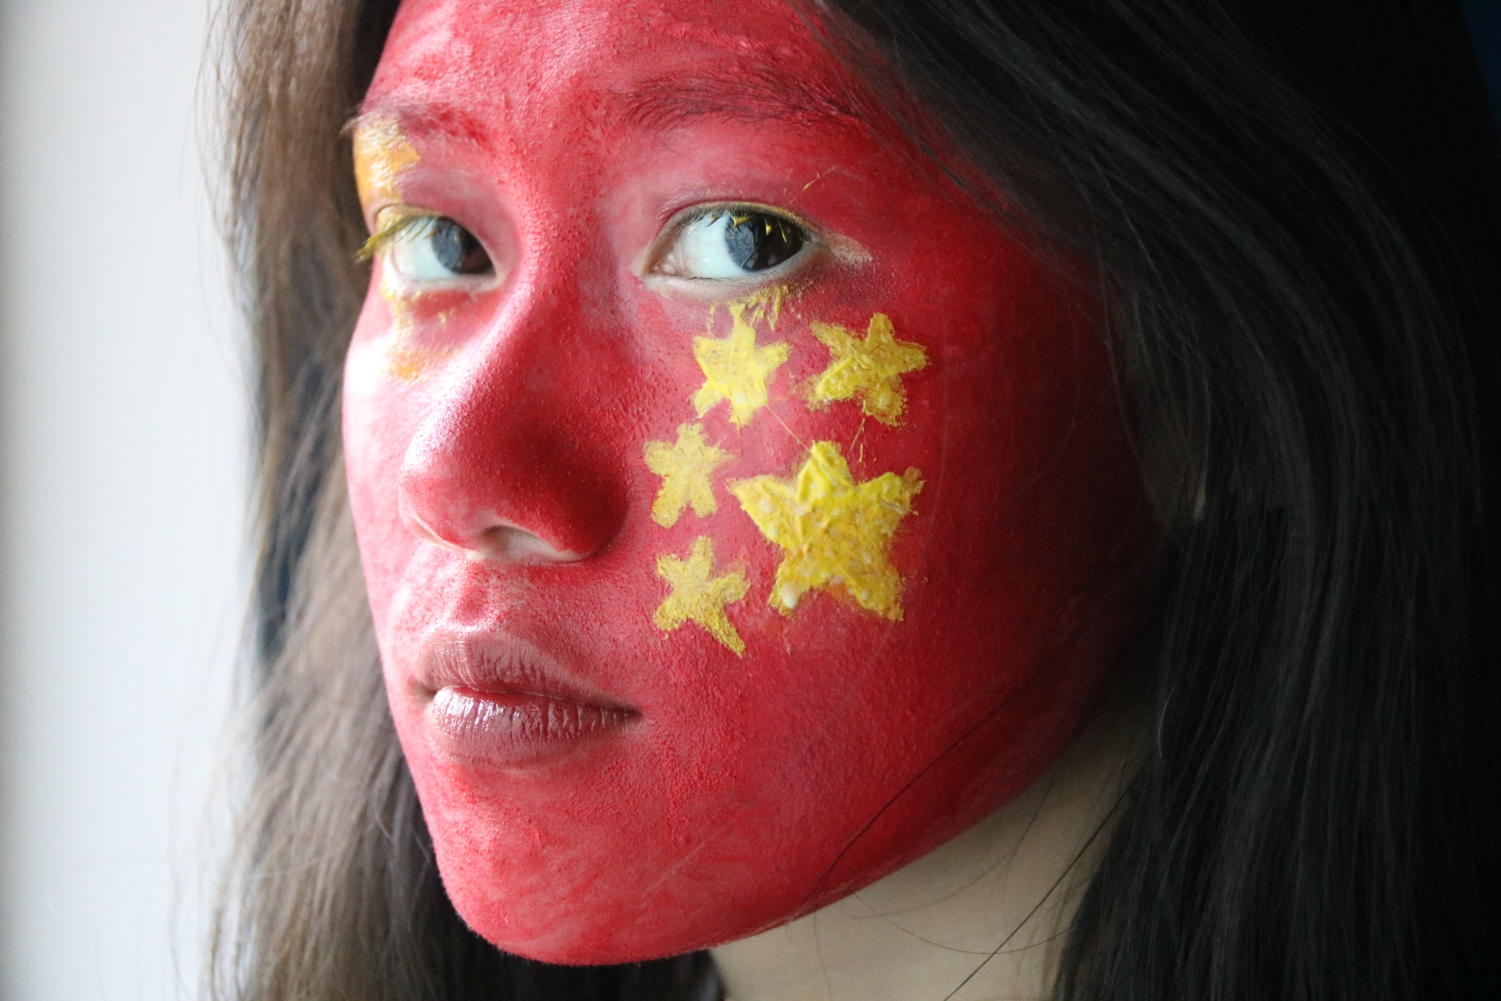 Coppell High School junior Nanzihe Tong is a first-year exchange student from China. Bringing her culture and study experiences from China, she hopes to share her story to reveal the difficulties international students have to face.